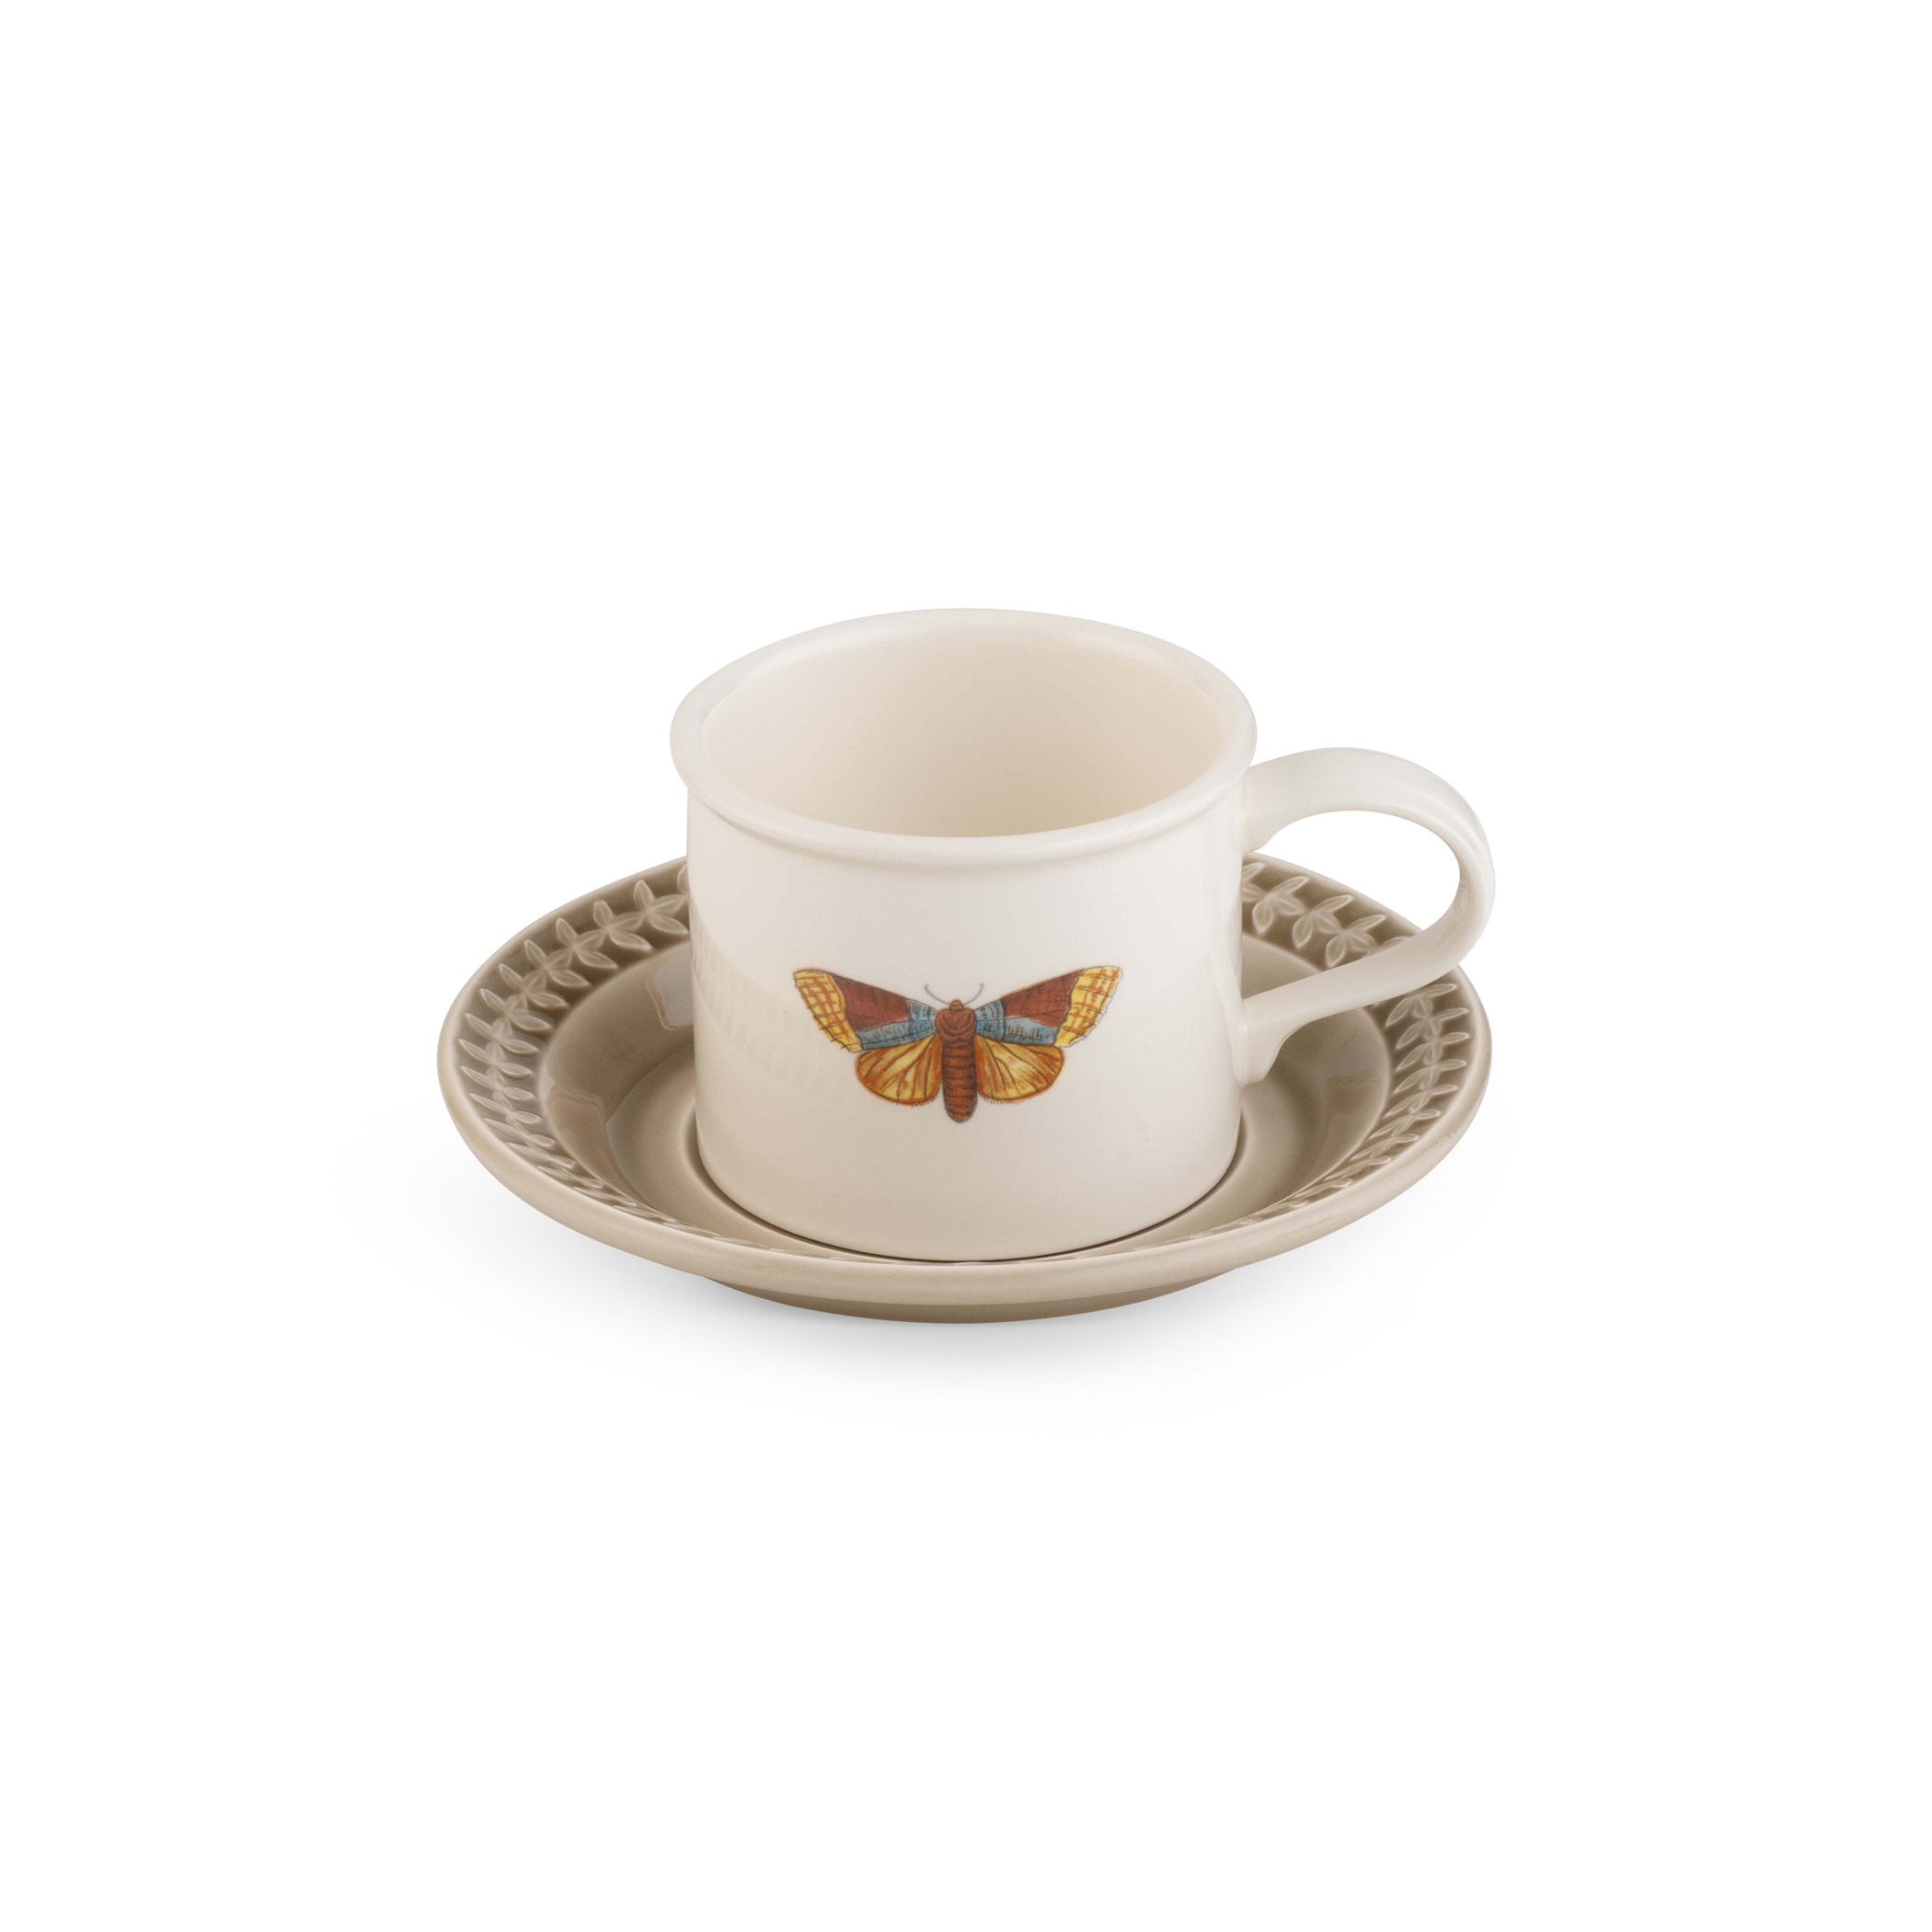 Botanic Garden Harmony Papilio Opal Breakfast Cup and Saucer image number 0